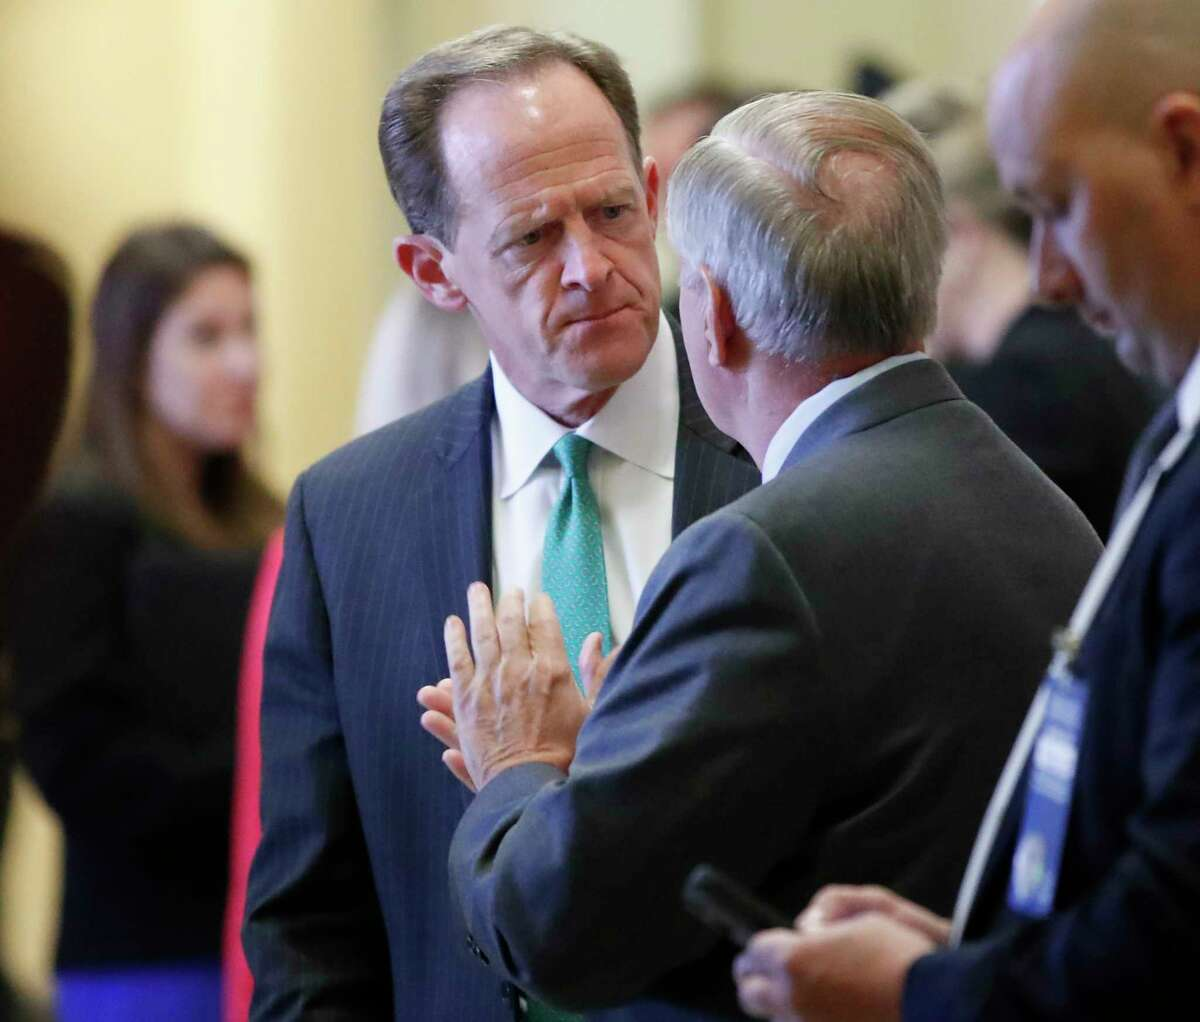 Sen. Pat Toomey, R-Pa., left, and Sen. Lindsey Graham, R-S.C. talk on Capitol Hill in Washington, Tuesday, April 25, 2017. Graham says he emerged from a dinner meeting with Donald Trump confident the president will not allow North Korea to build a nuclear-tipped missile capable of striking the United States. (AP Photo/Alex Brandon)